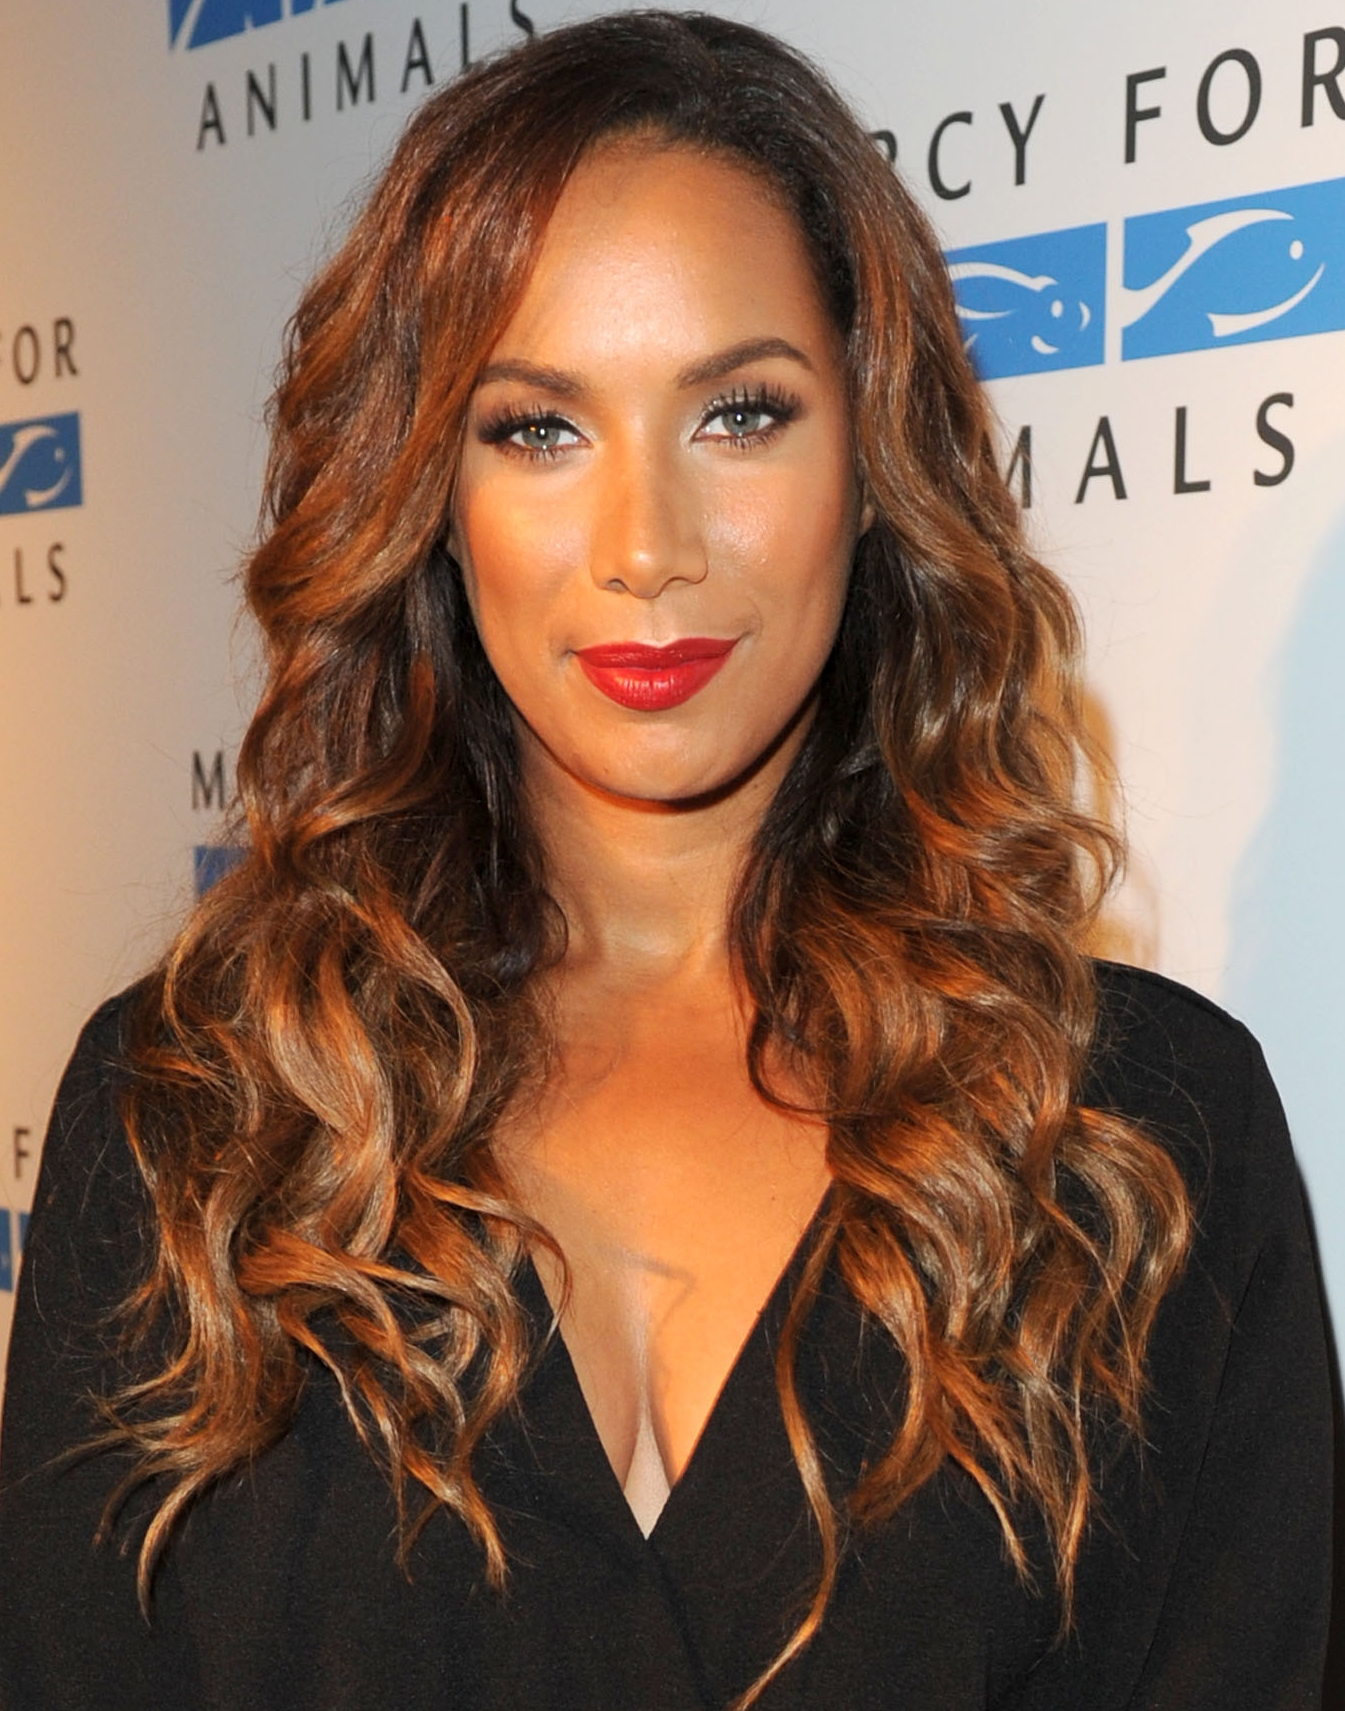 The 34-year old daughter of father Aural Josiah Lewis and mother Maria Lewis Leona Lewis in 2019 photo. Leona Lewis earned a  million dollar salary - leaving the net worth at 22 million in 2019